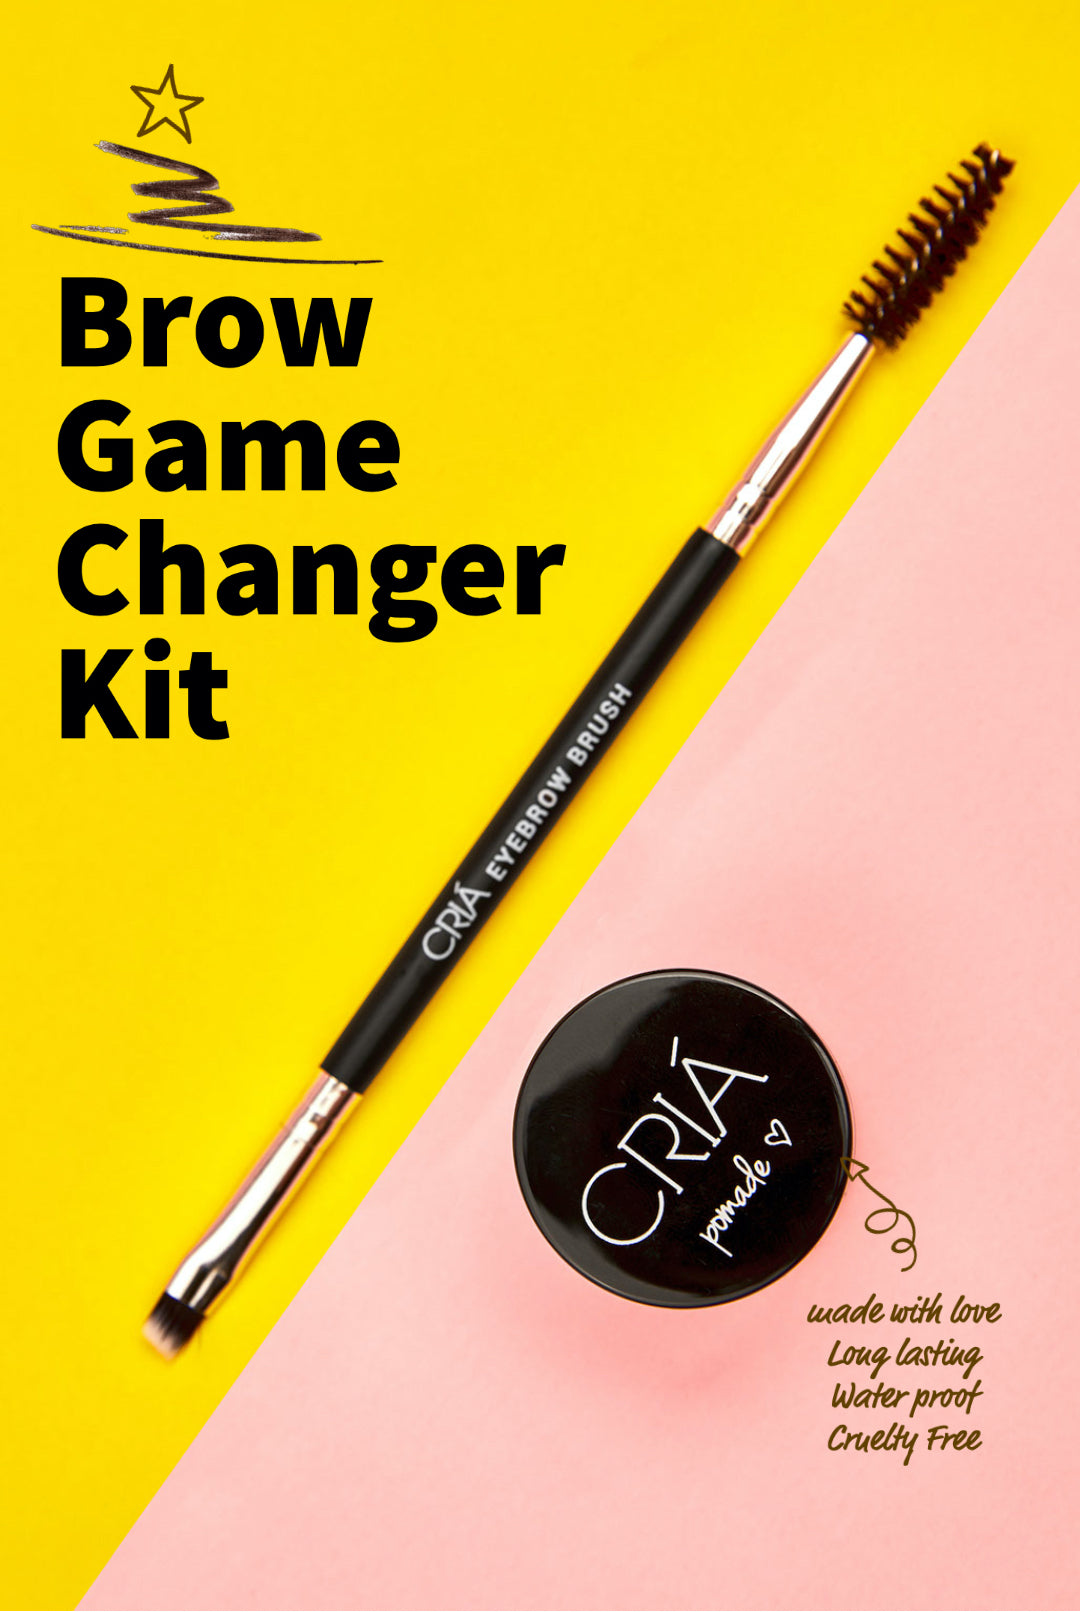 Brow Game Changer Kit